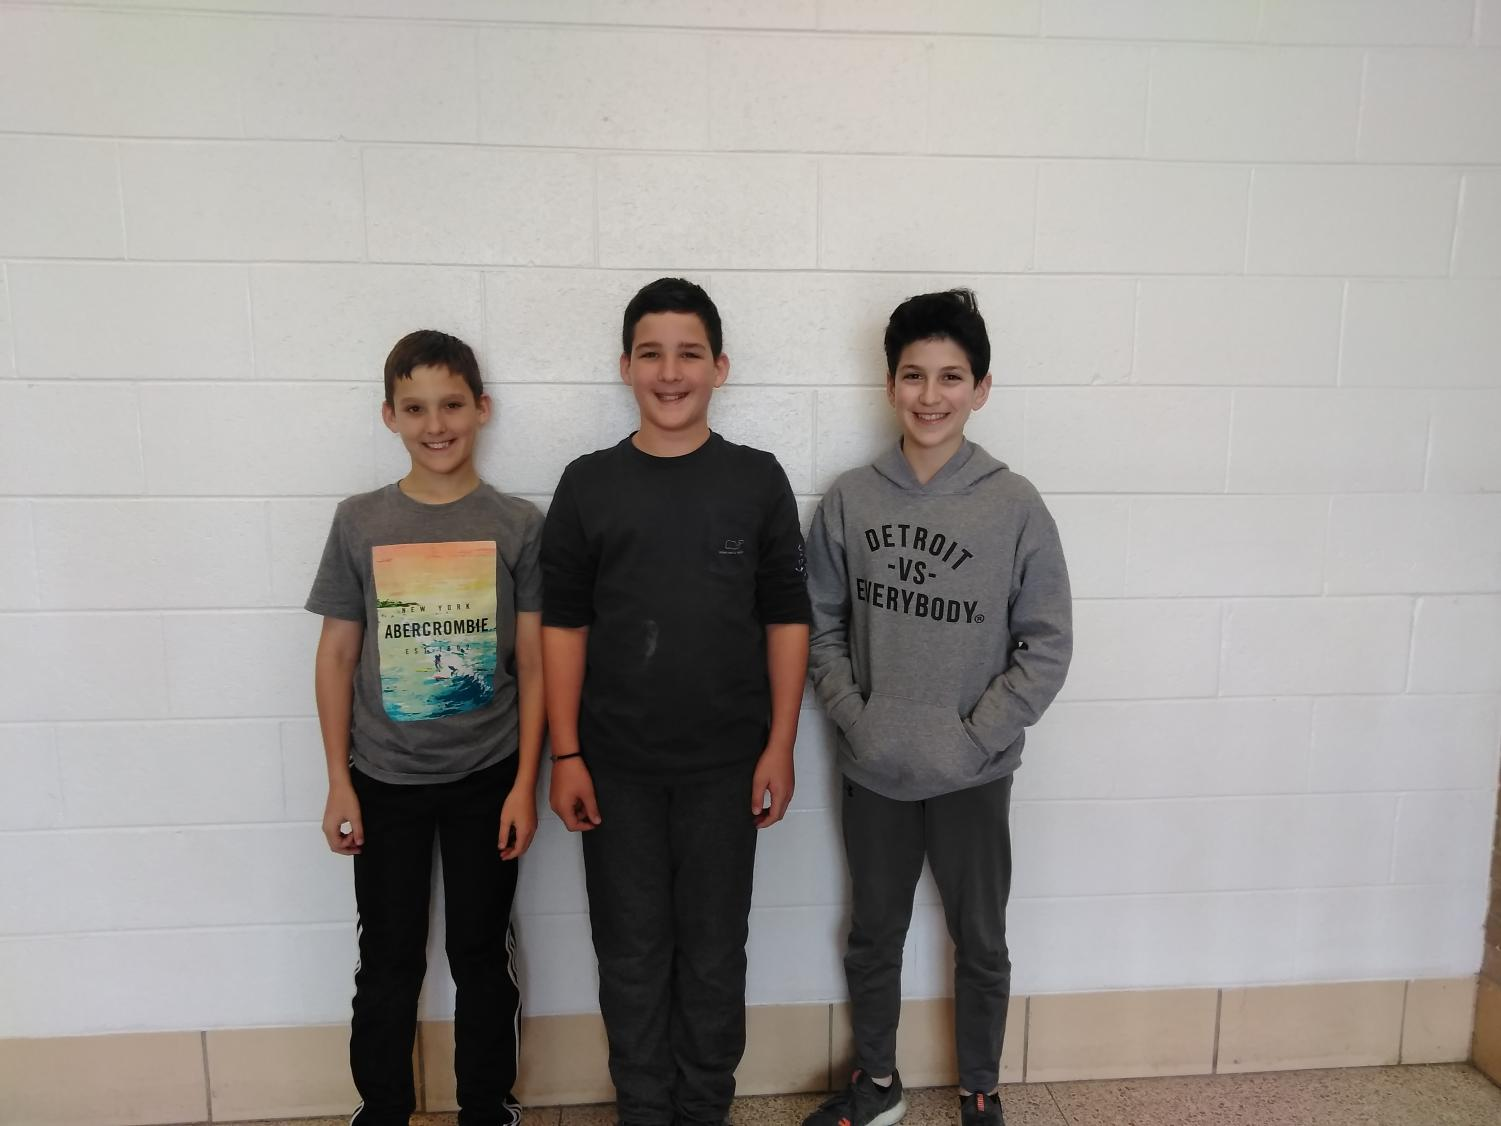 From left to right: Brayden Creedon, Keegan Creedon, and Noah Bazzi.